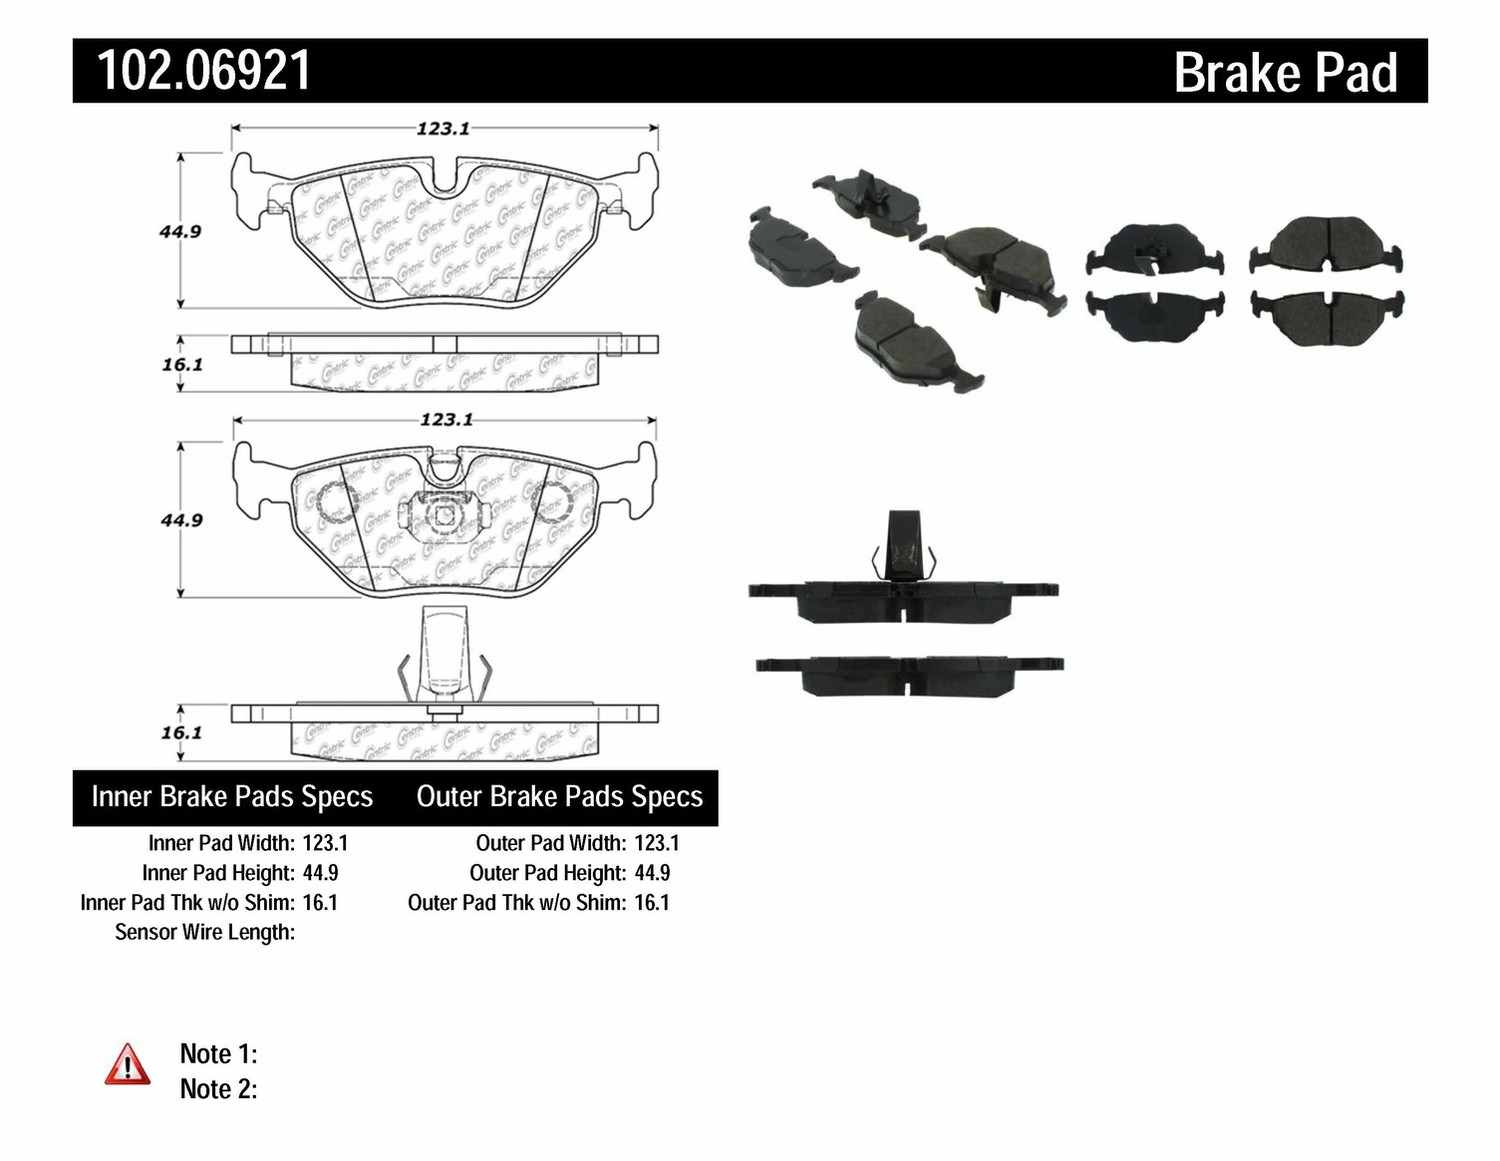 C-TEK BY CENTRIC - C-TEK Metallic Brake Pads (Rear) - CTK 102.06921